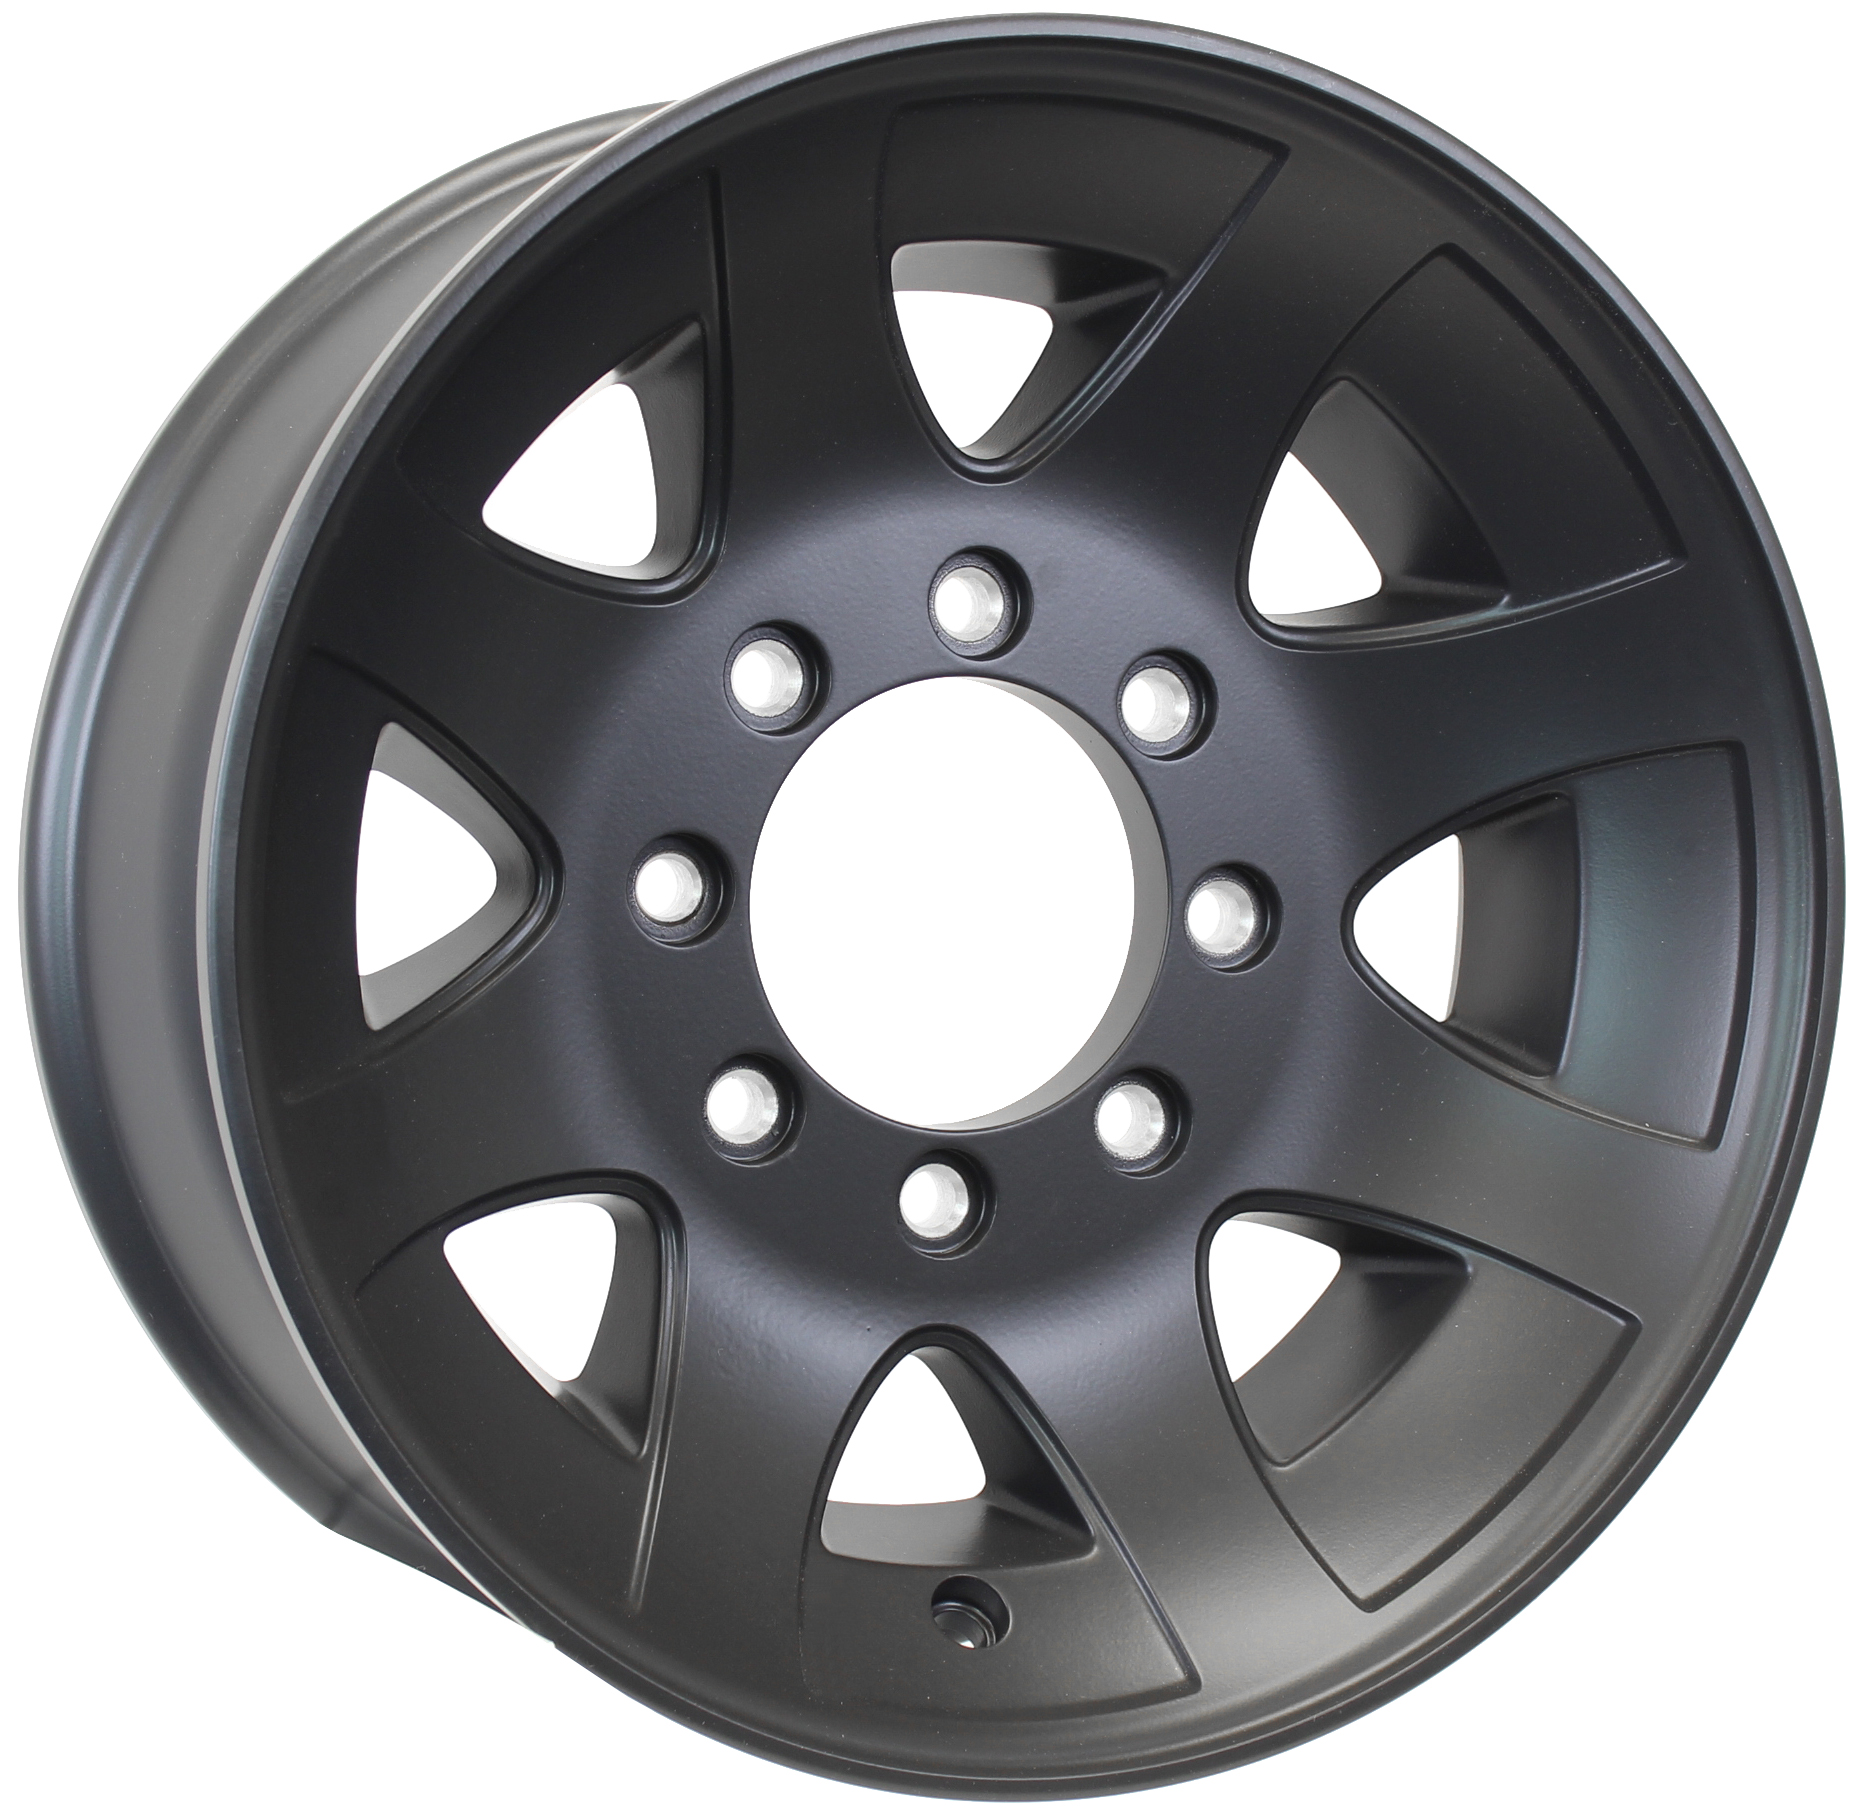 YF 17.5x6.75; 8-Lug Matte Black Spoke Aluminum Trailer Wheel  Image